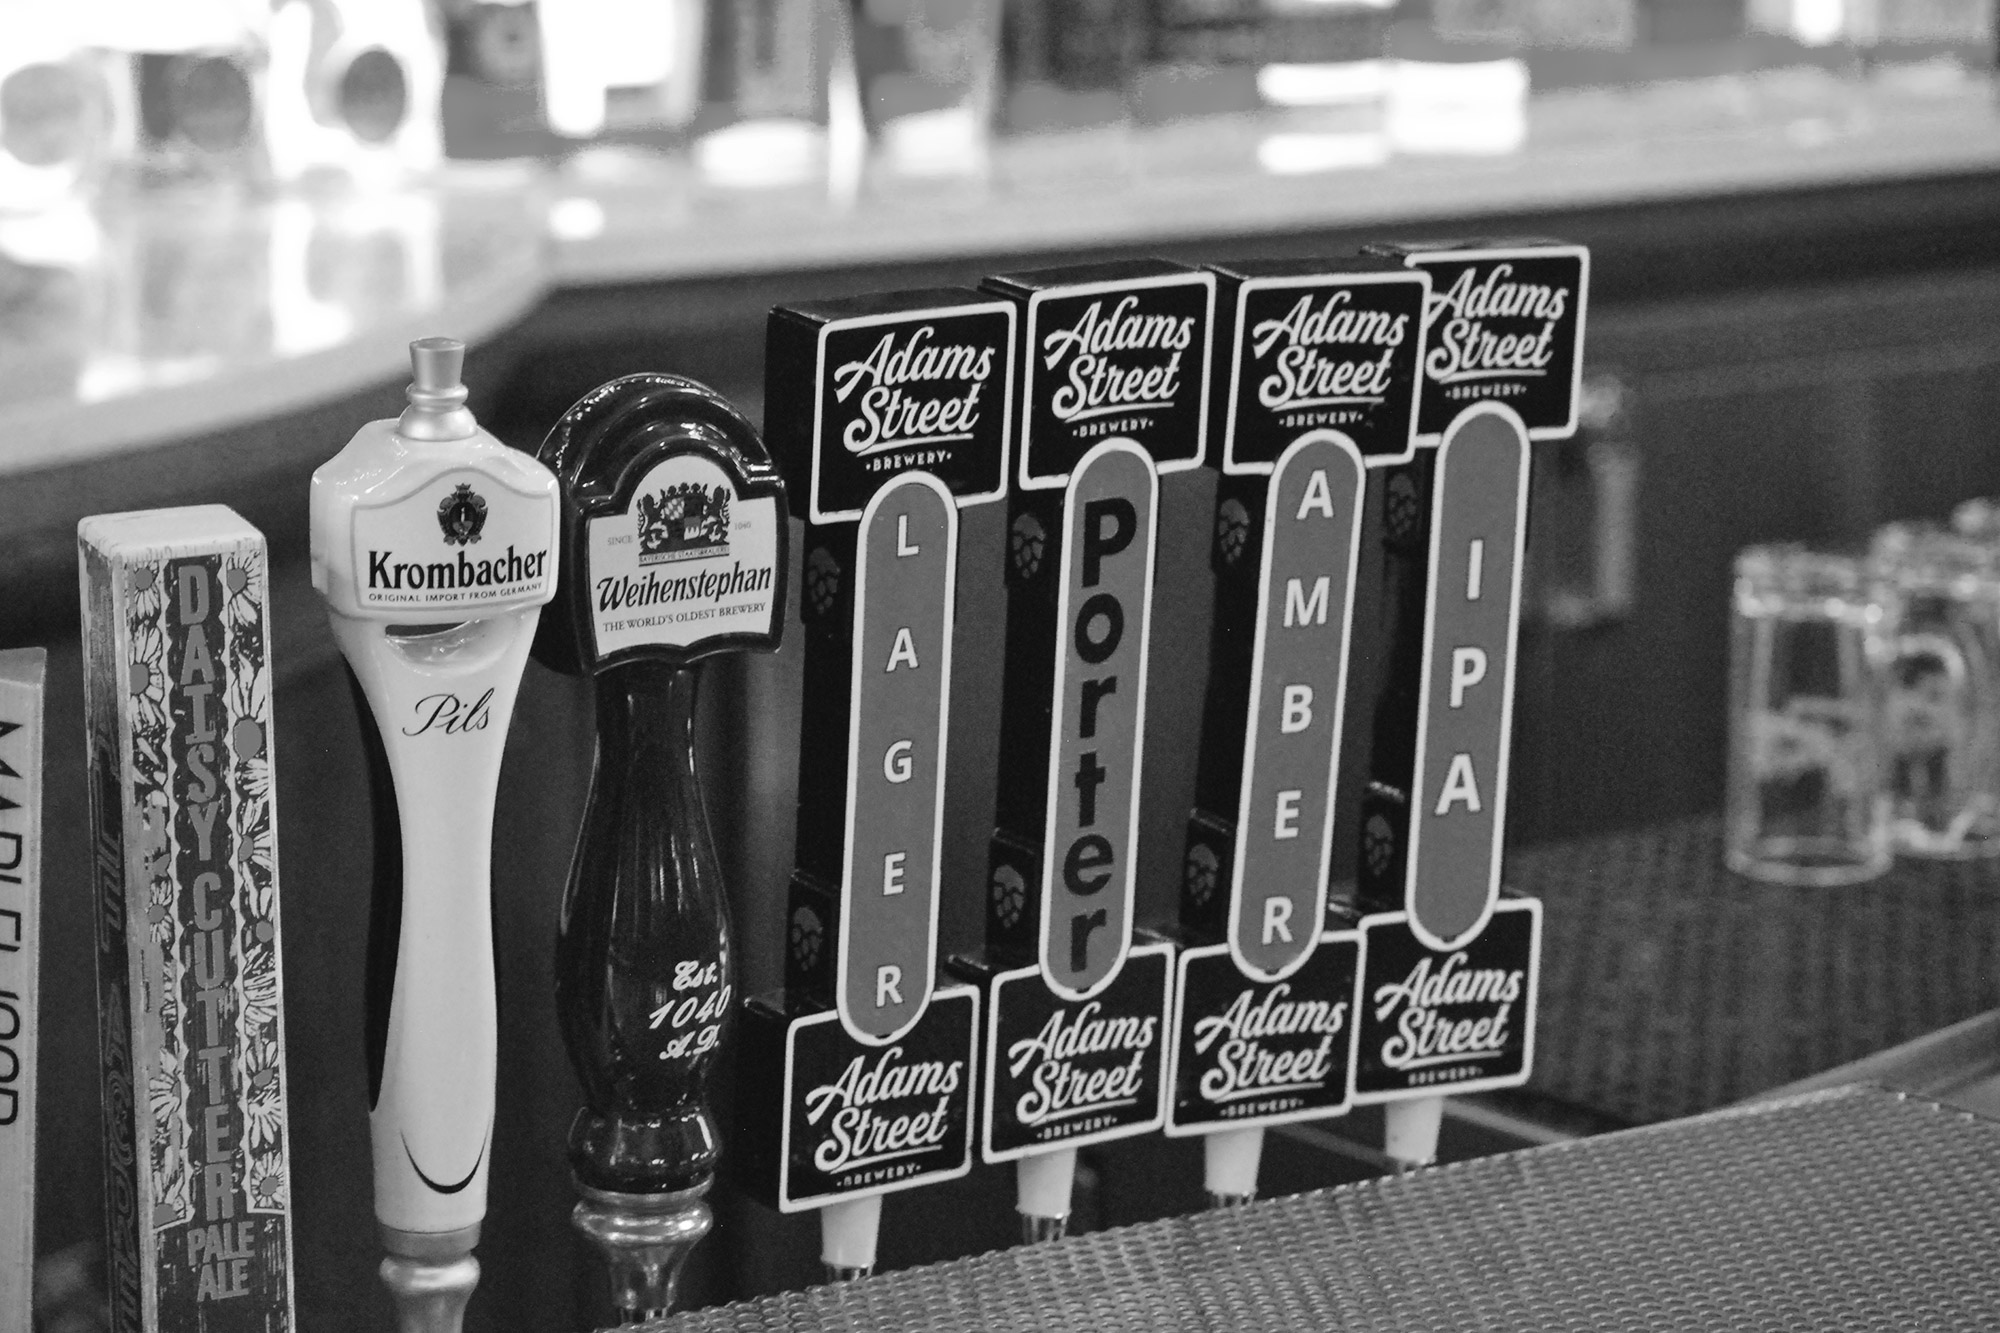 Initial Adams Street Brewery offerings sit alongside notable German and Chicago taps. The ASB tap handles mirror the shape of the iconic Berghoff sign.